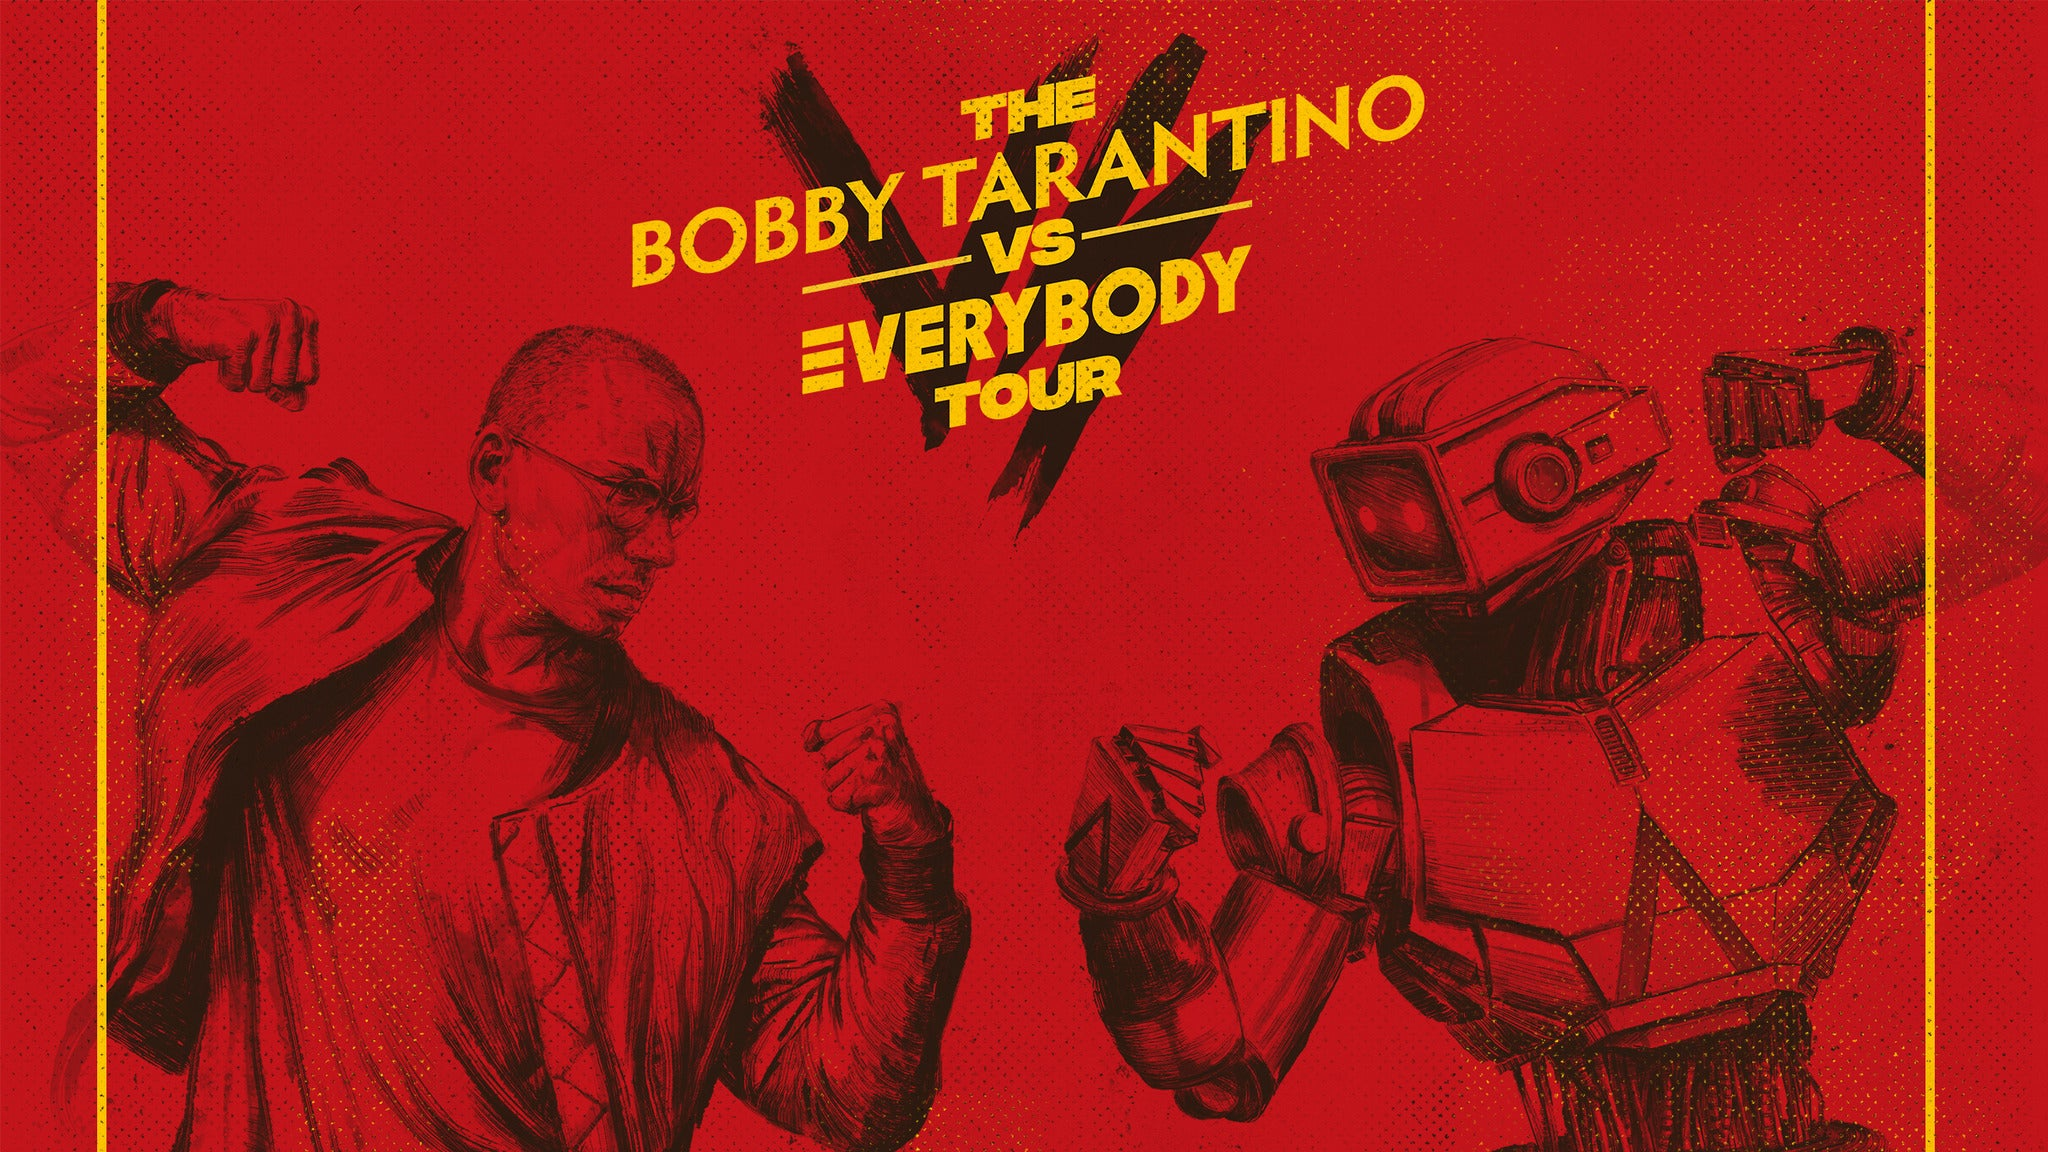 Logic Presents: Bobby Tarantino vs. Everybody Tour with NF - Irvine, CA 92618